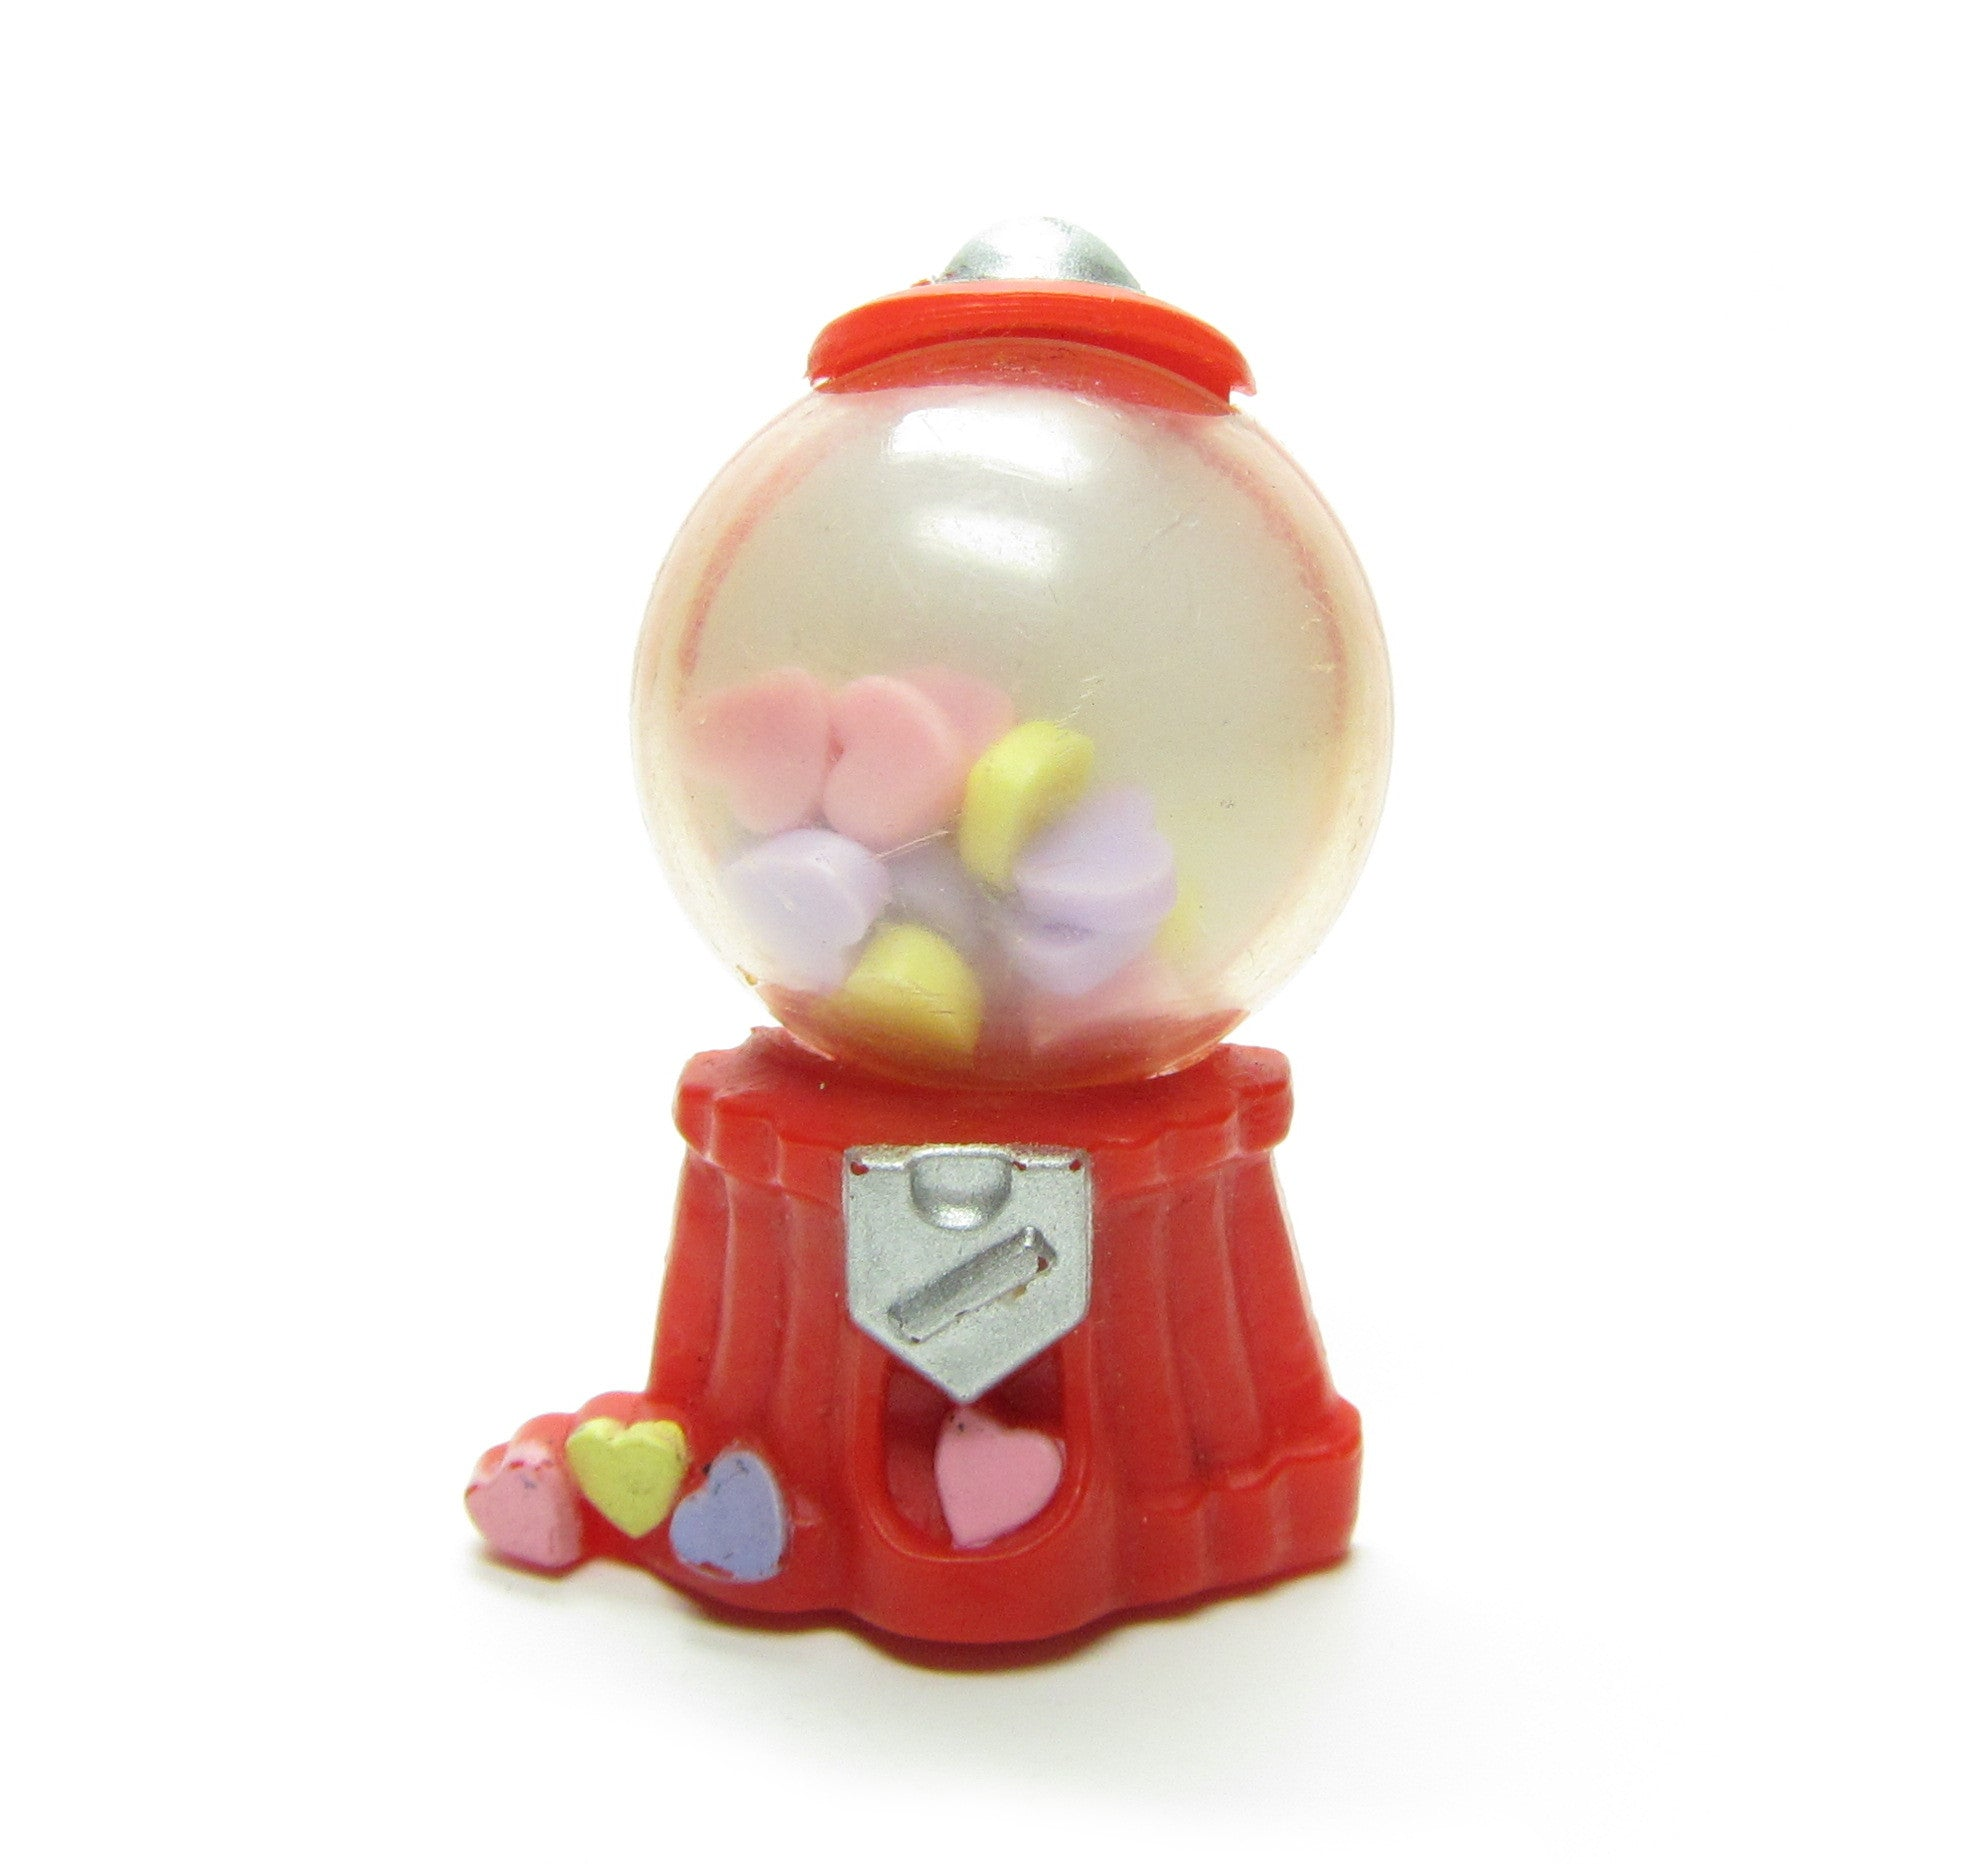 Gumball Machine Pin Hallmark Valentine's Day Vintage Lapel